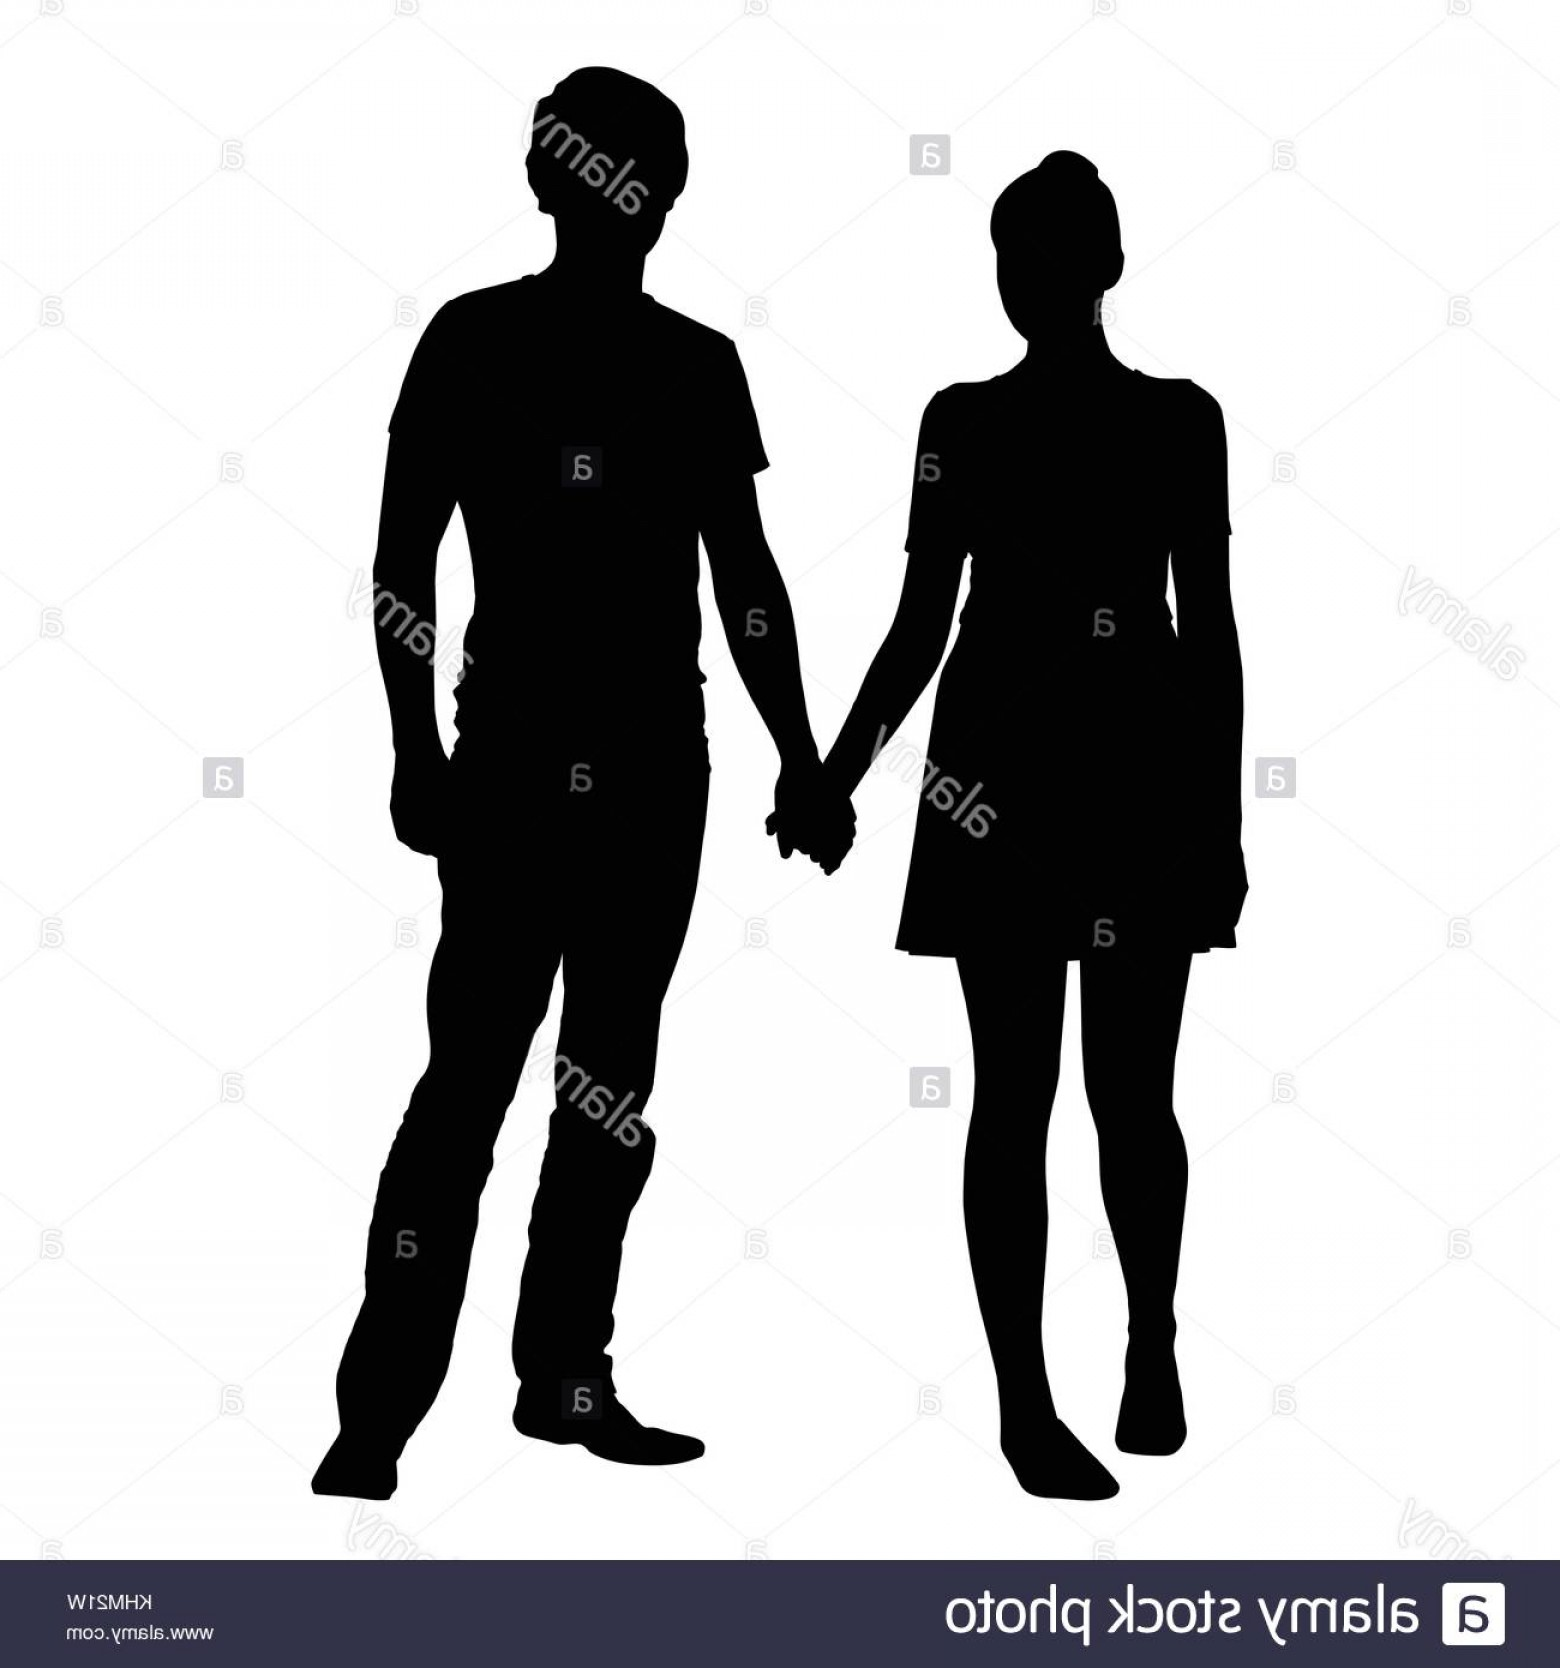 Male Silhouette Vector Art: Stock Photo Realistic Silhouette Of Young Man And Woman Holding Hands Vector